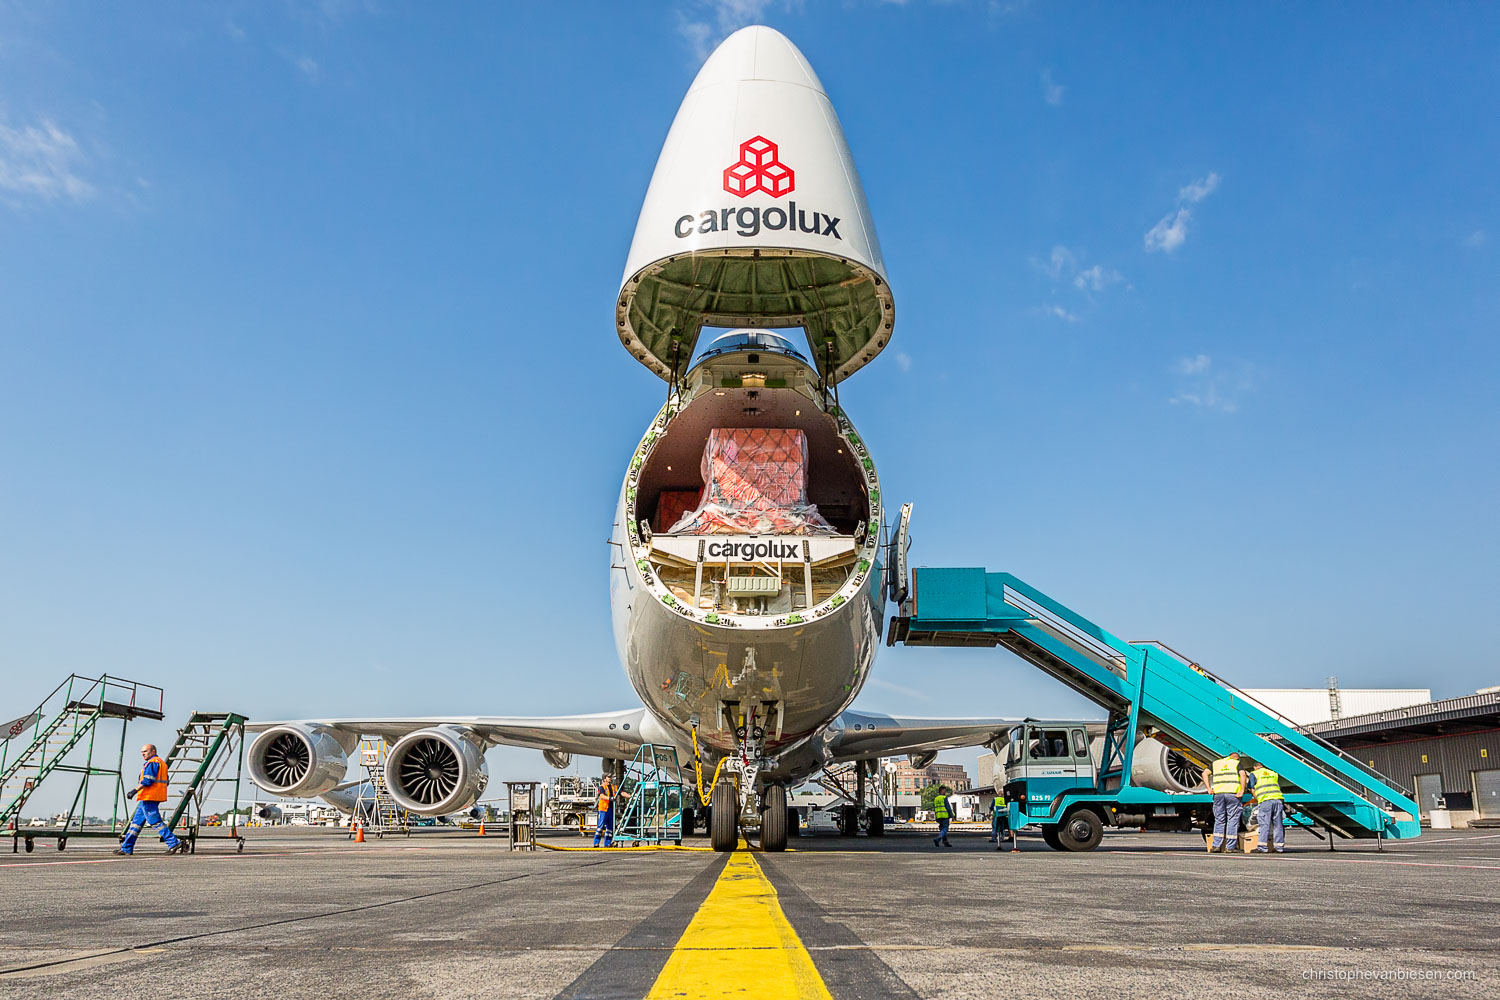 Work with me - Commission Work - Boeing 747 of Luxembourg's Cargolux fleet - Say Aaaah - Photography by Christophe Van Biesen - Luxembourg Landscape and Travel Photographer